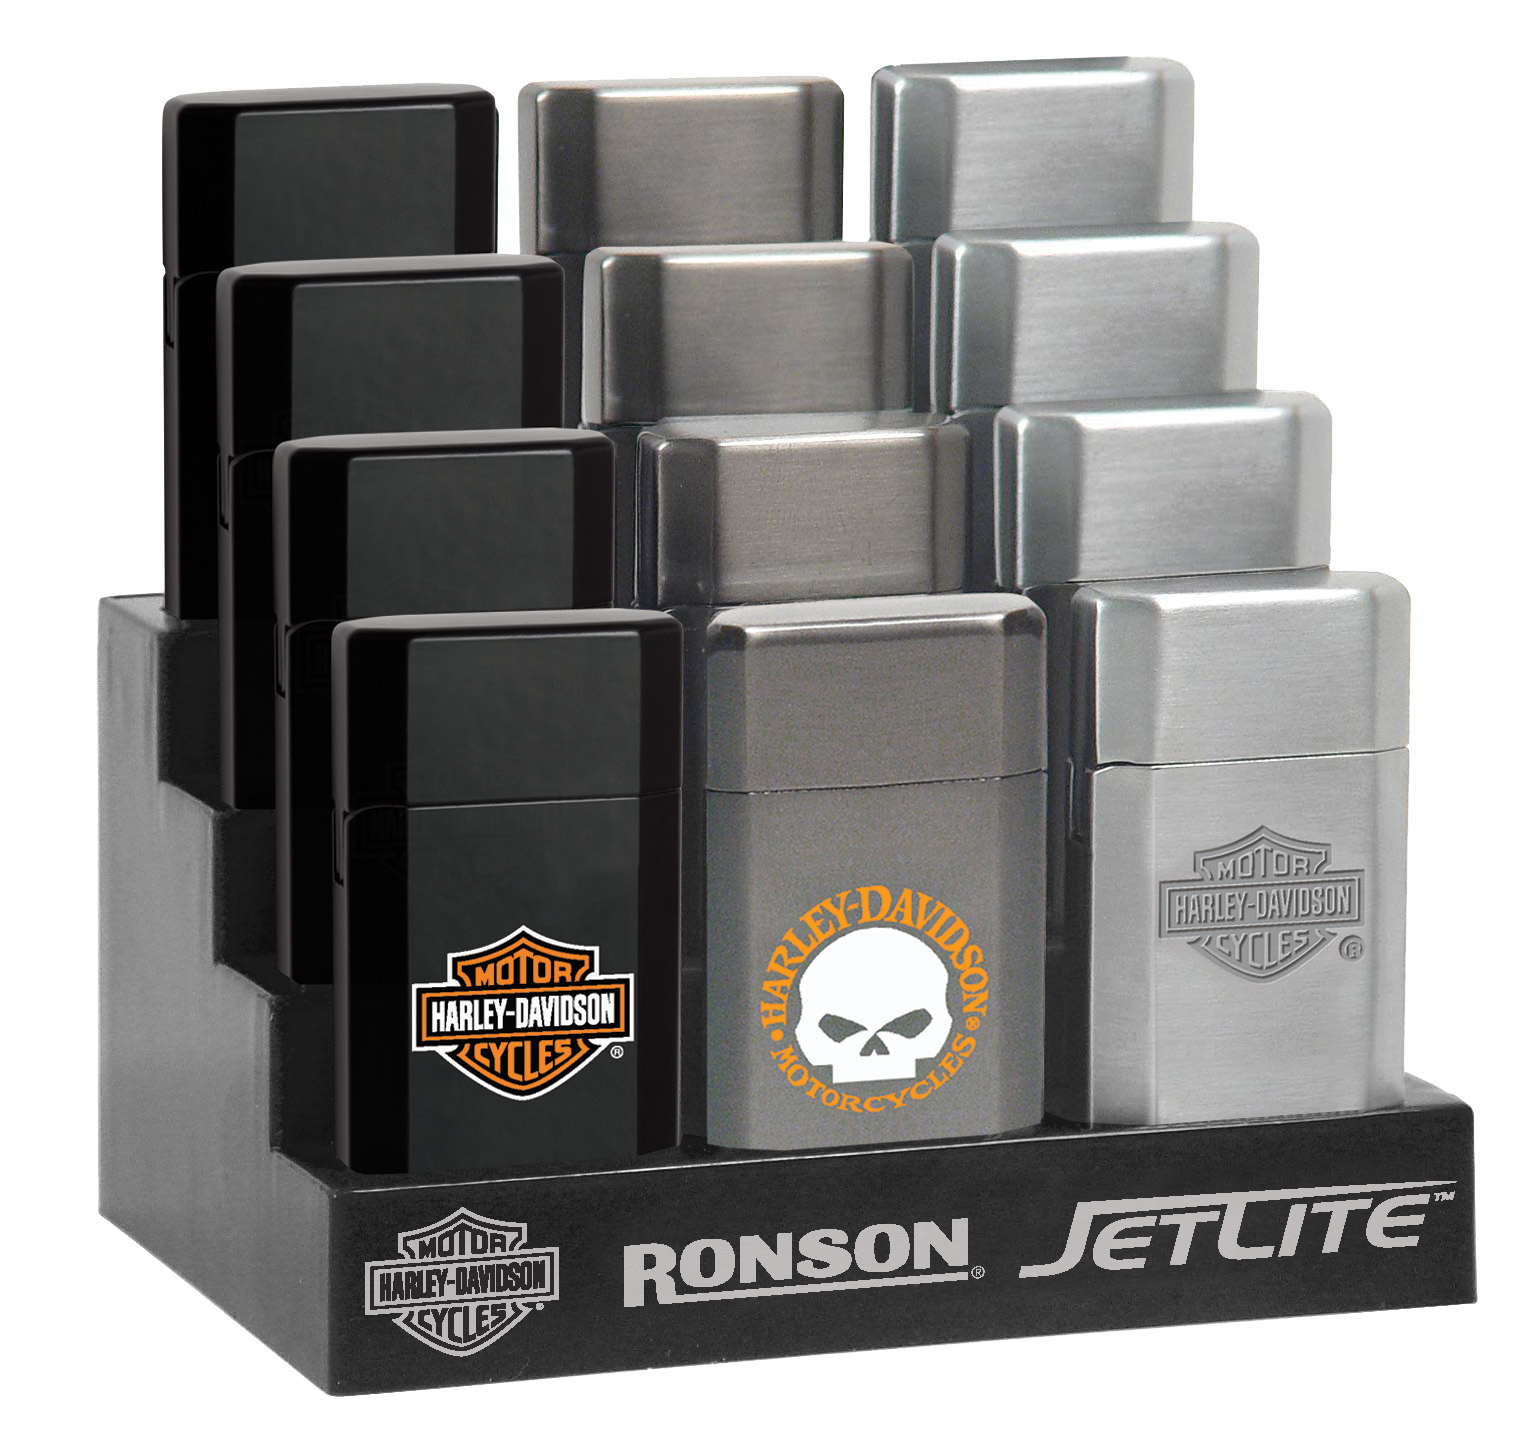 43521 - Ronson Harley Davidson HD JetLite Blister Card Assortment 12 Pack